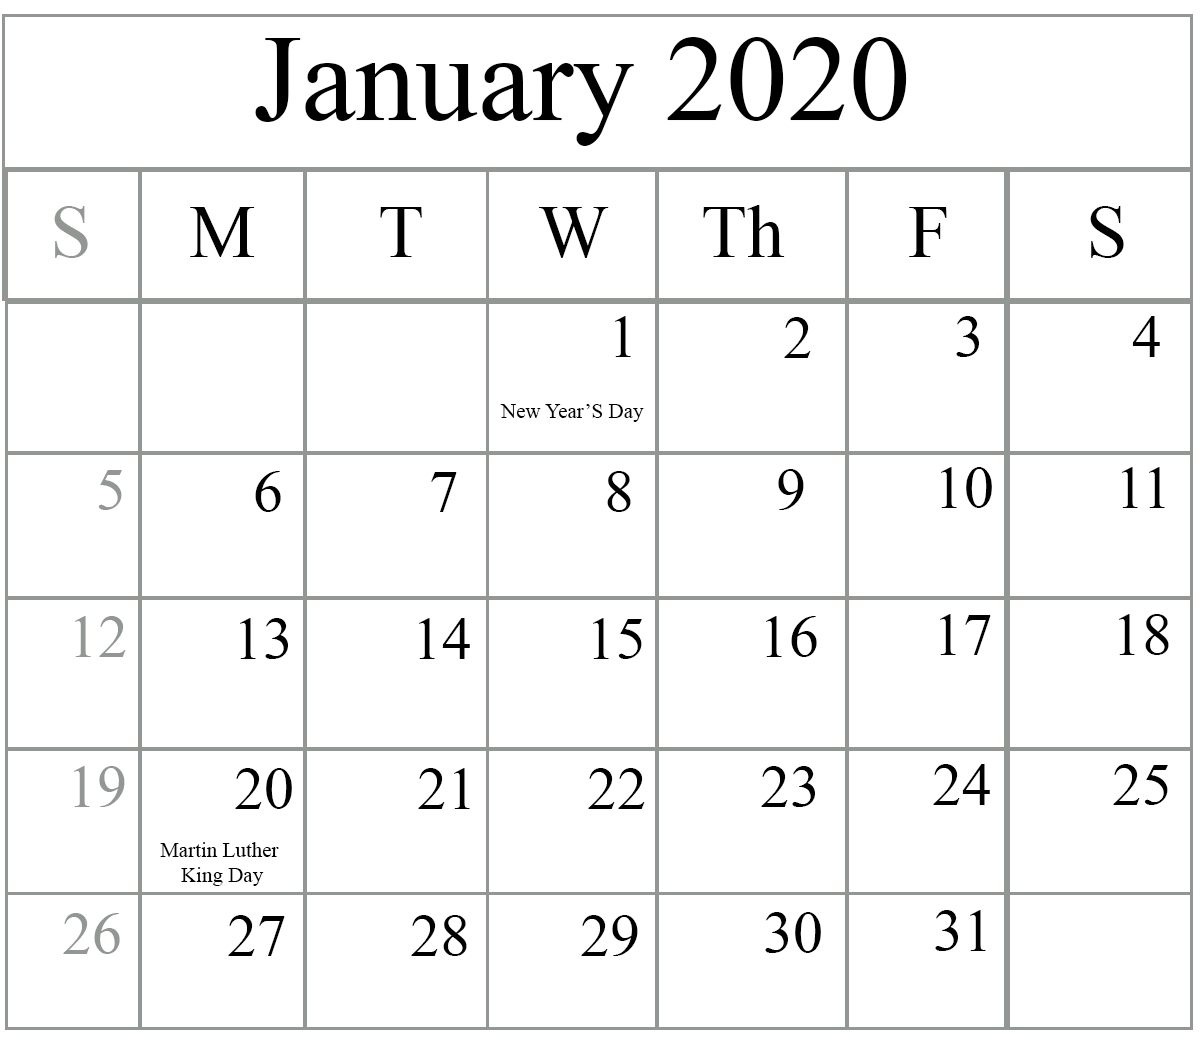 Free January 2020 Printable Calendar In Pdf, Excel & Word intended for 2020 Calendar Printable Singapore